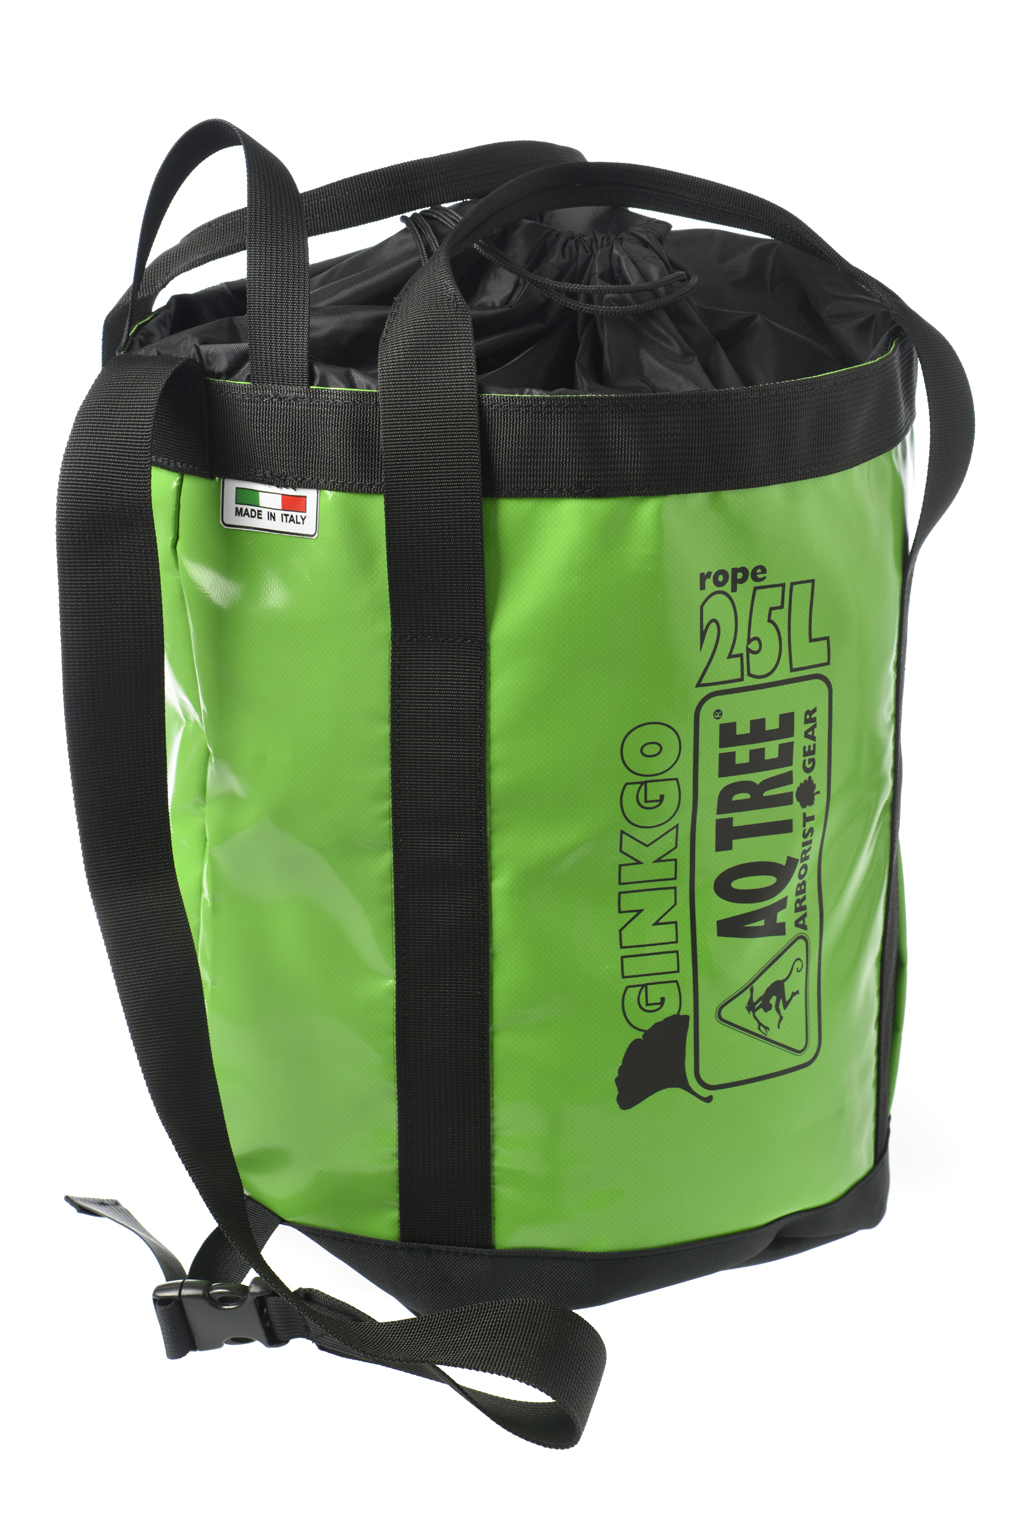 AQ TREE GINKGO ROPE BUCKET BAG 25LT